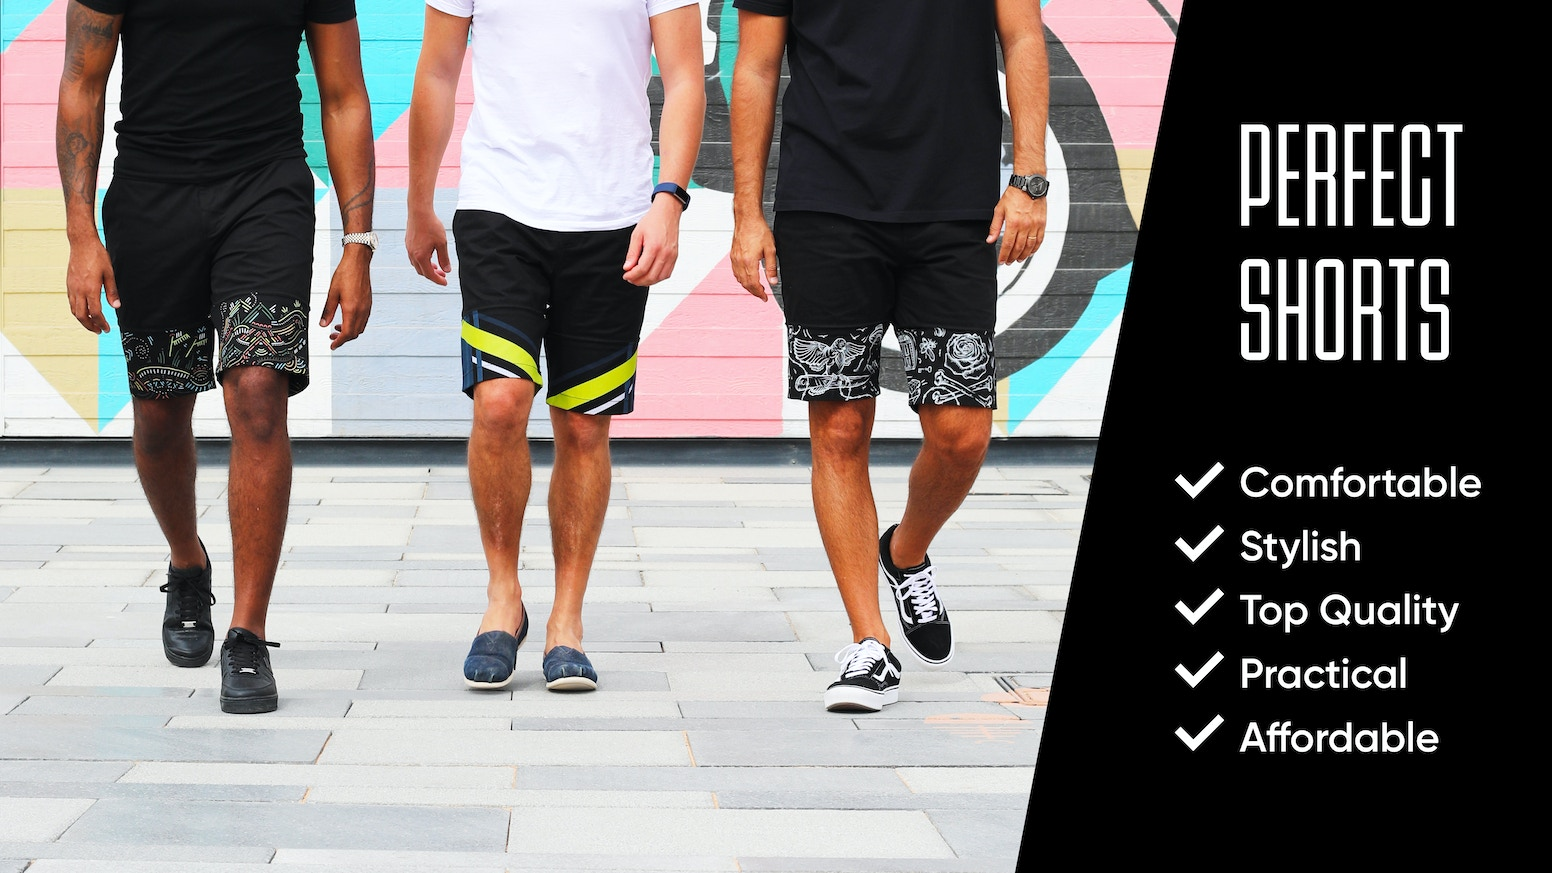 One pair of shorts, and an endless choice of sleeve designs that zip on or off, depending on your style and where you want to go.